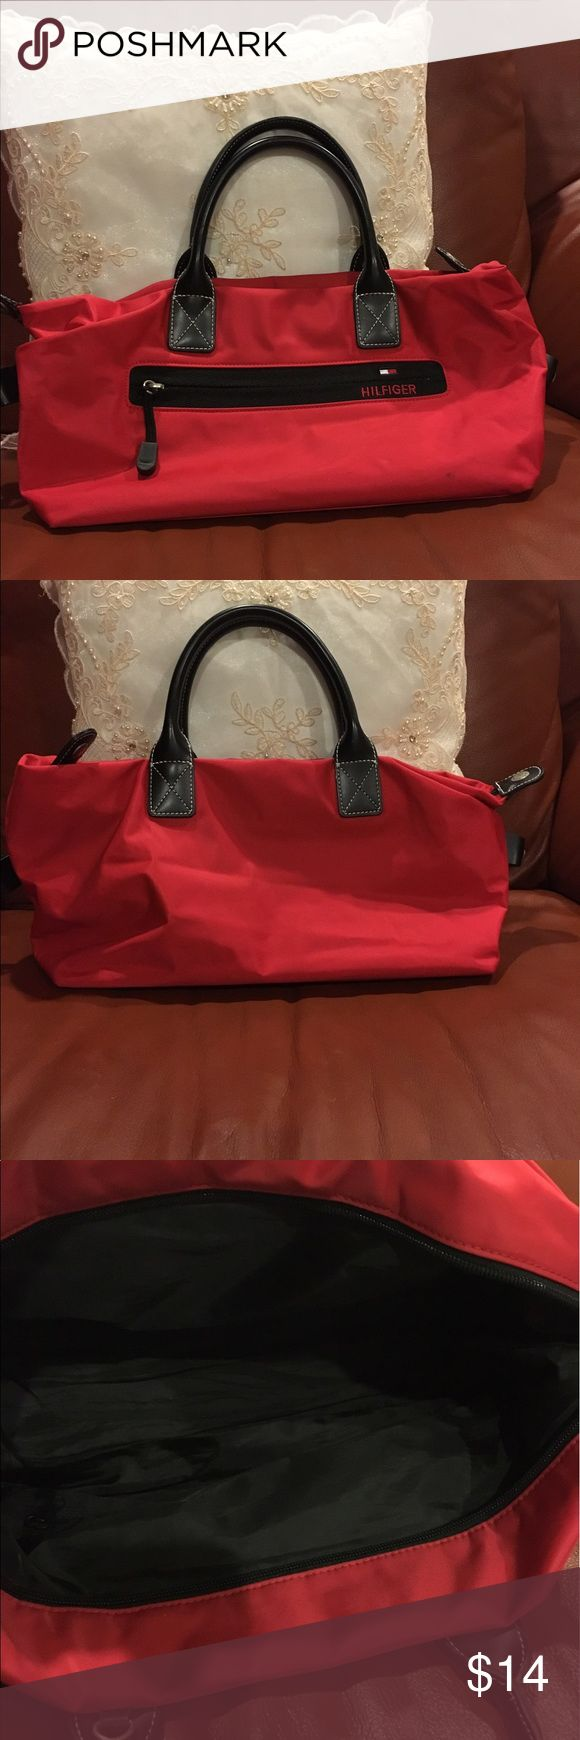 🍒1 DAY SALE Tommy Hilfiger mini tote Tommy Hilfiger mini tote in red! Small mark on bag, as shown in photo. Tommy Hilfiger Bags Mini Bags